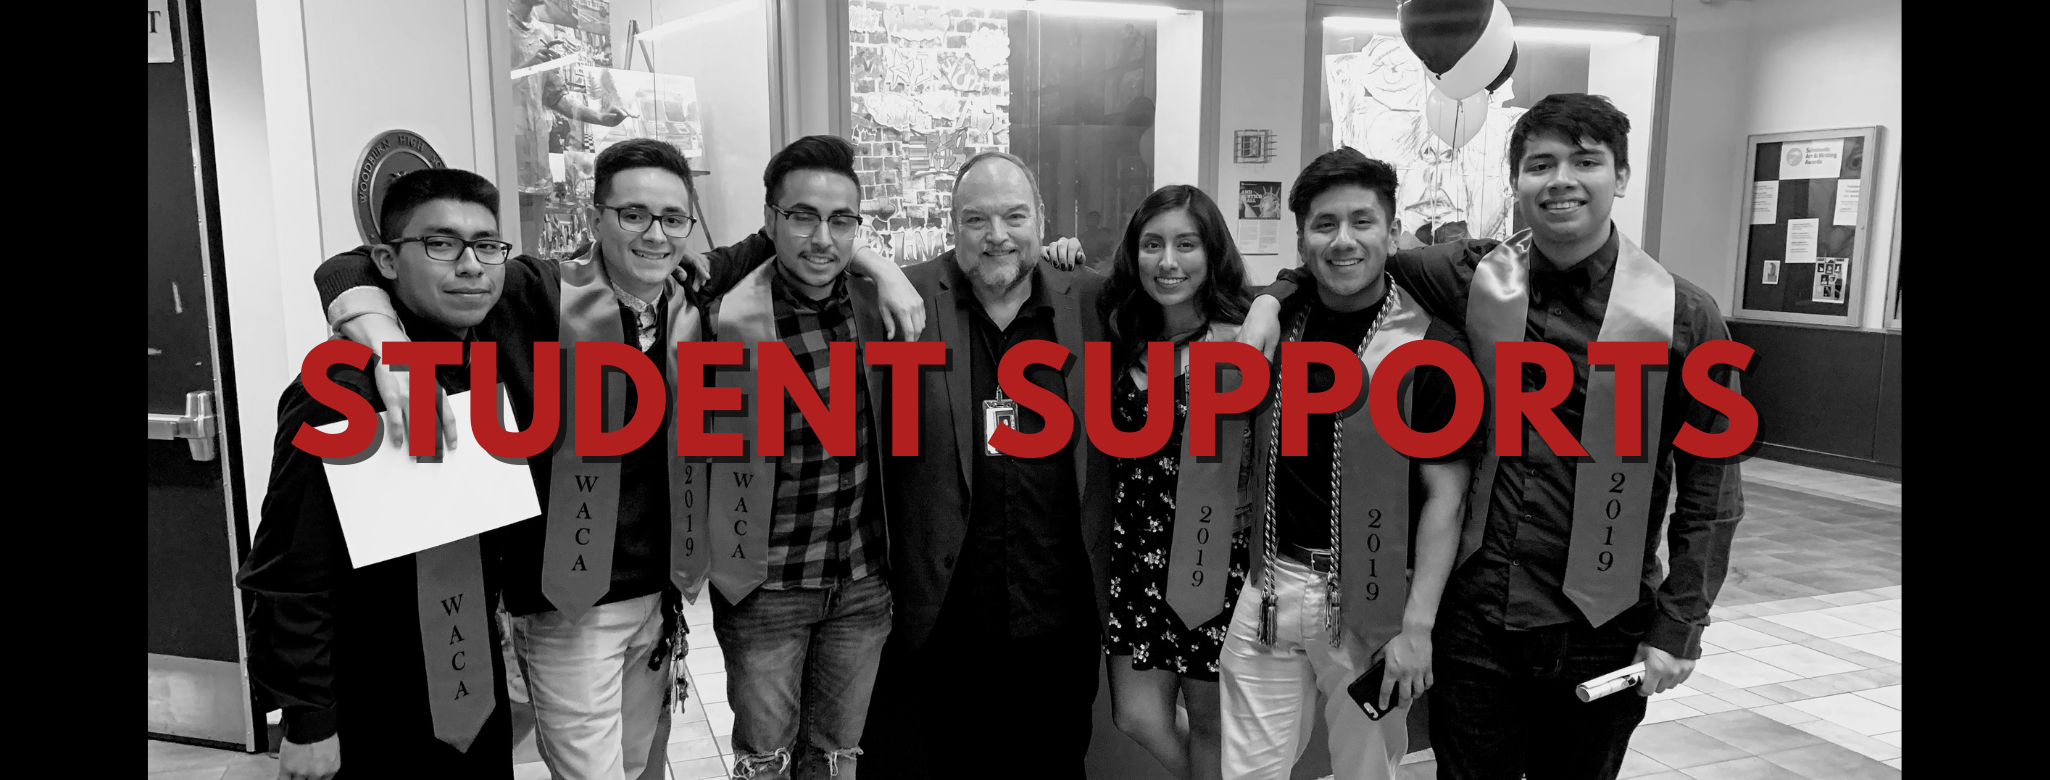 Student Support - Headers